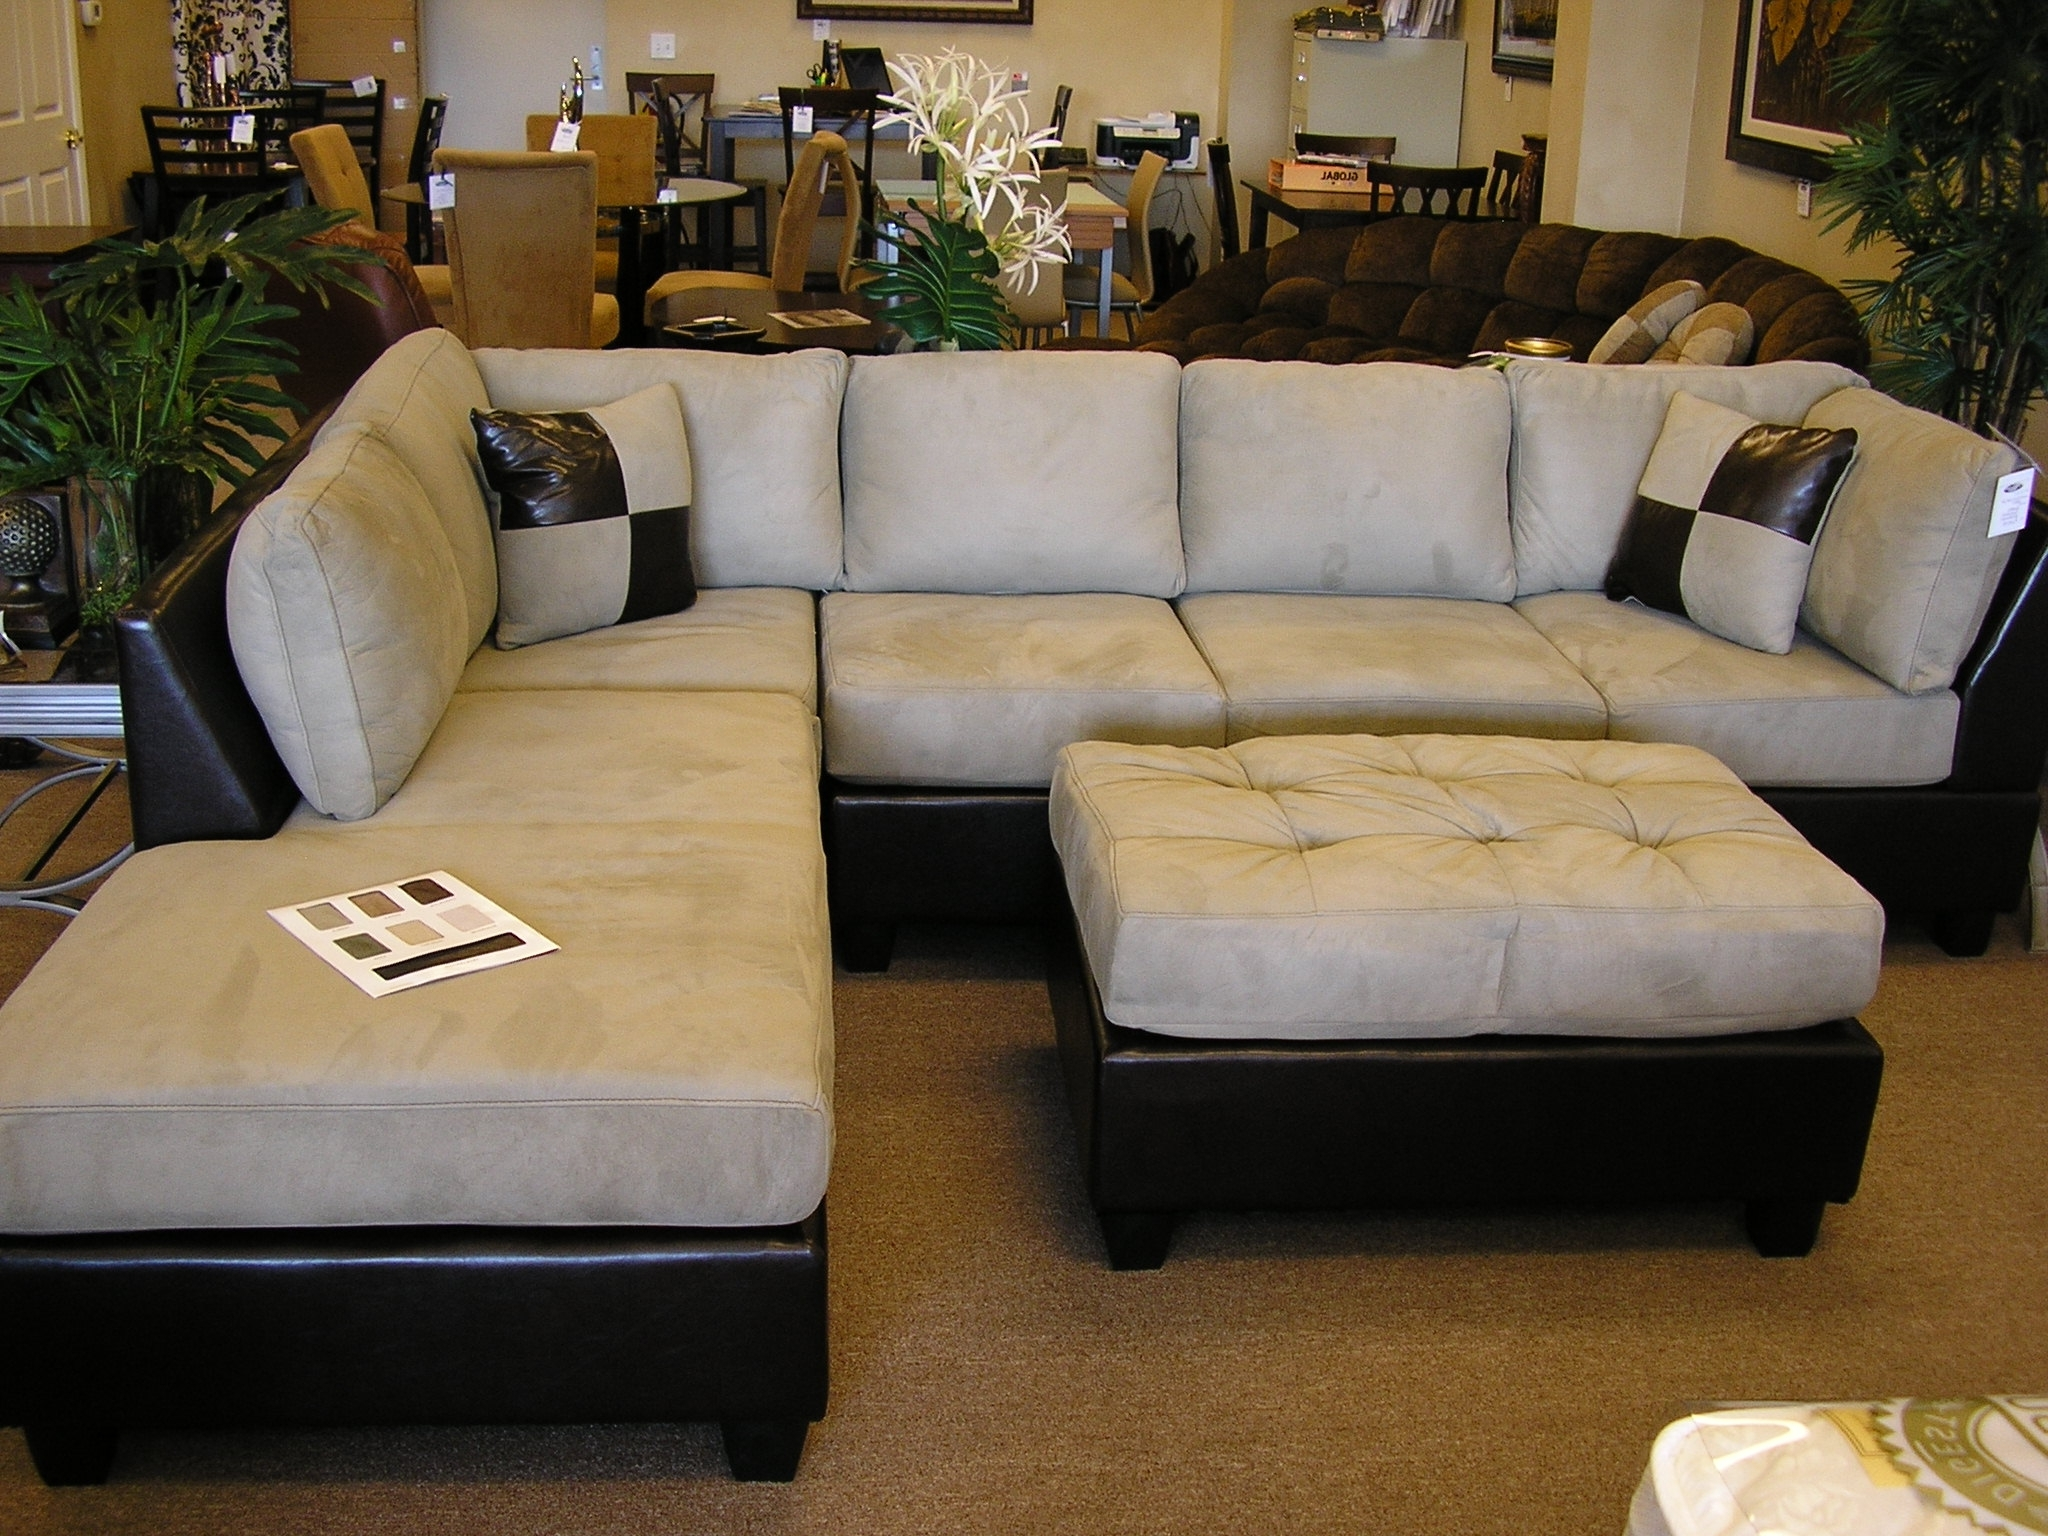 Awesome Sofa With Chaise Lounge 57 On Sofas And Couches Set With With Regard To Favorite Sofa Loveseat And Chaise Sets (View 12 of 15)